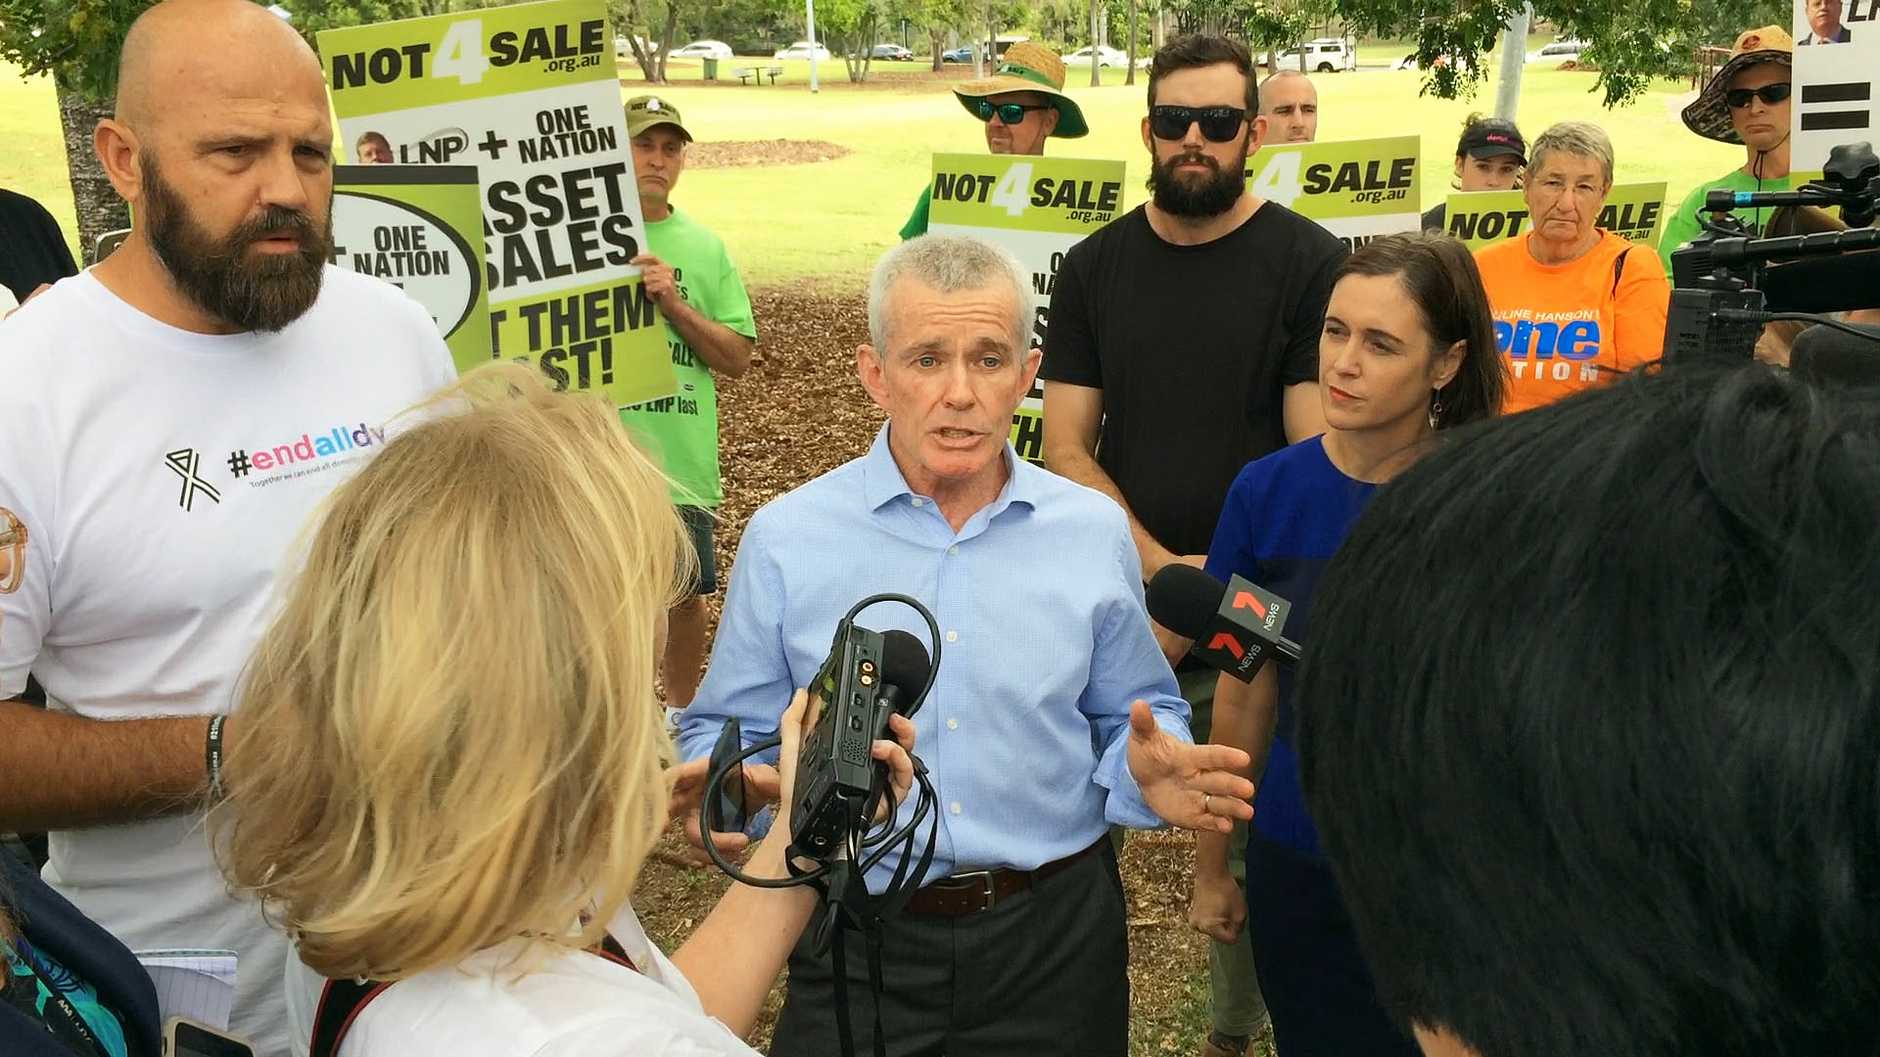 One Nation candidate Malcolm Roberts was confronted by union representatives at an End All DV awareness and fundraising event in Queens Park. Union representatives clashed with One Nation supporters in a verbal stoush.